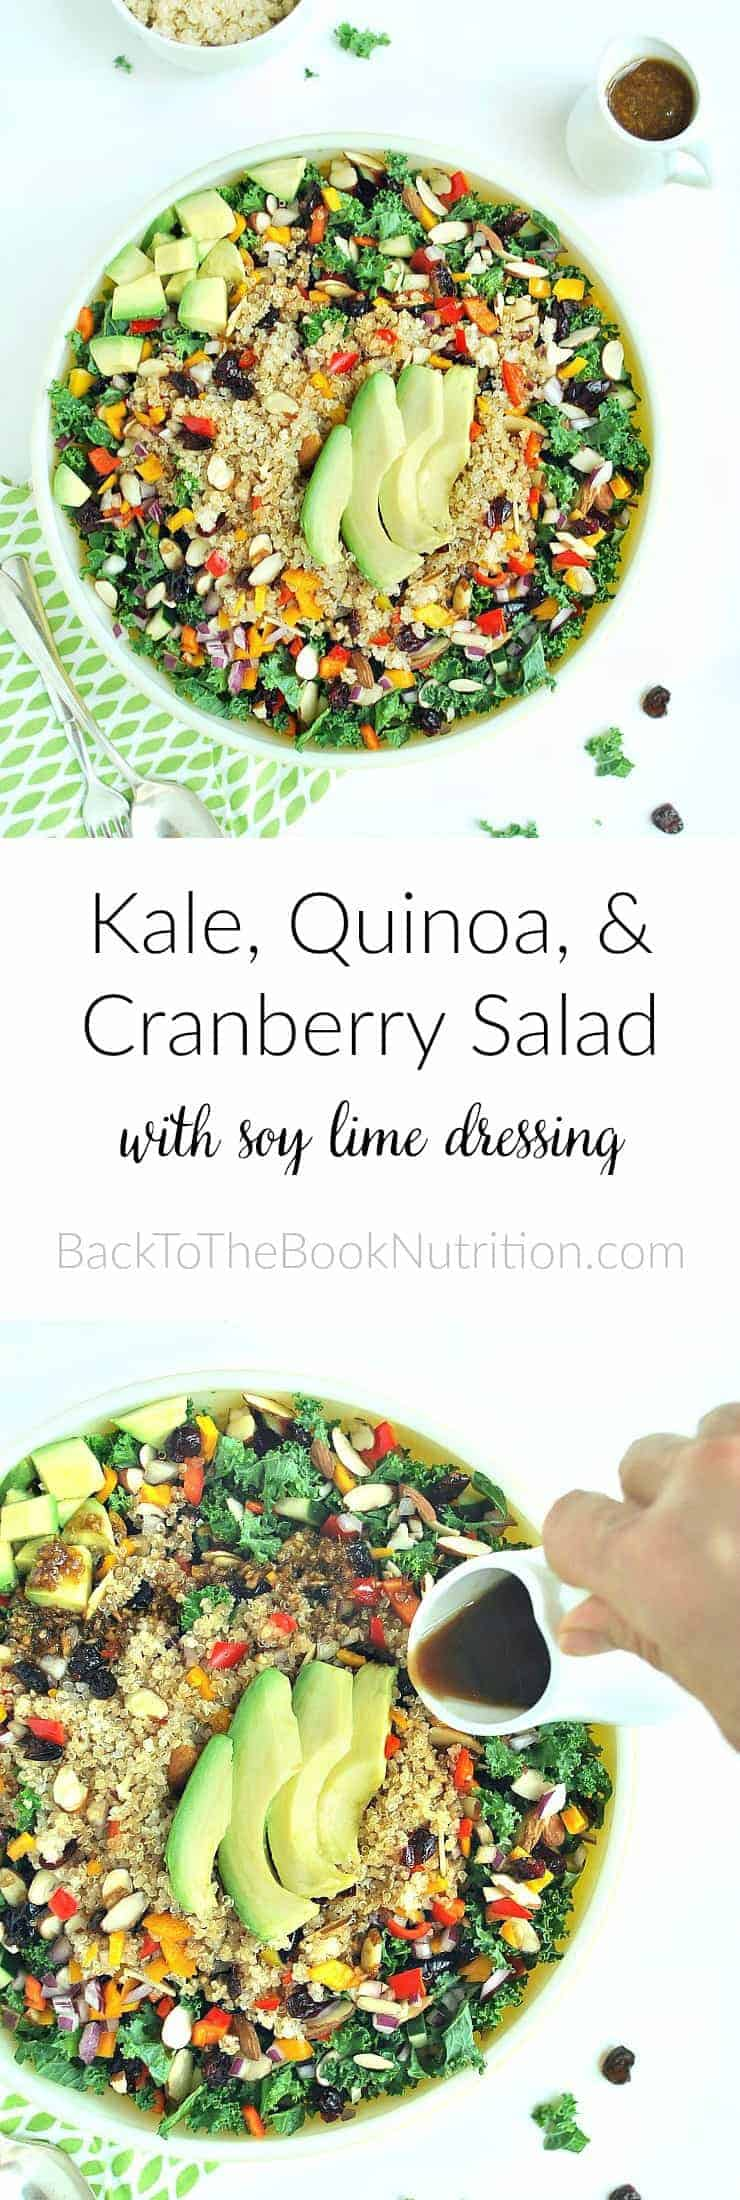 Superfood kale, quinoa, and cranberry salad with soy lime dressing. Loaded with flavor and texture, plus antioxidants, fiber, healthy fats, and more! | Back To The Book Nutrition